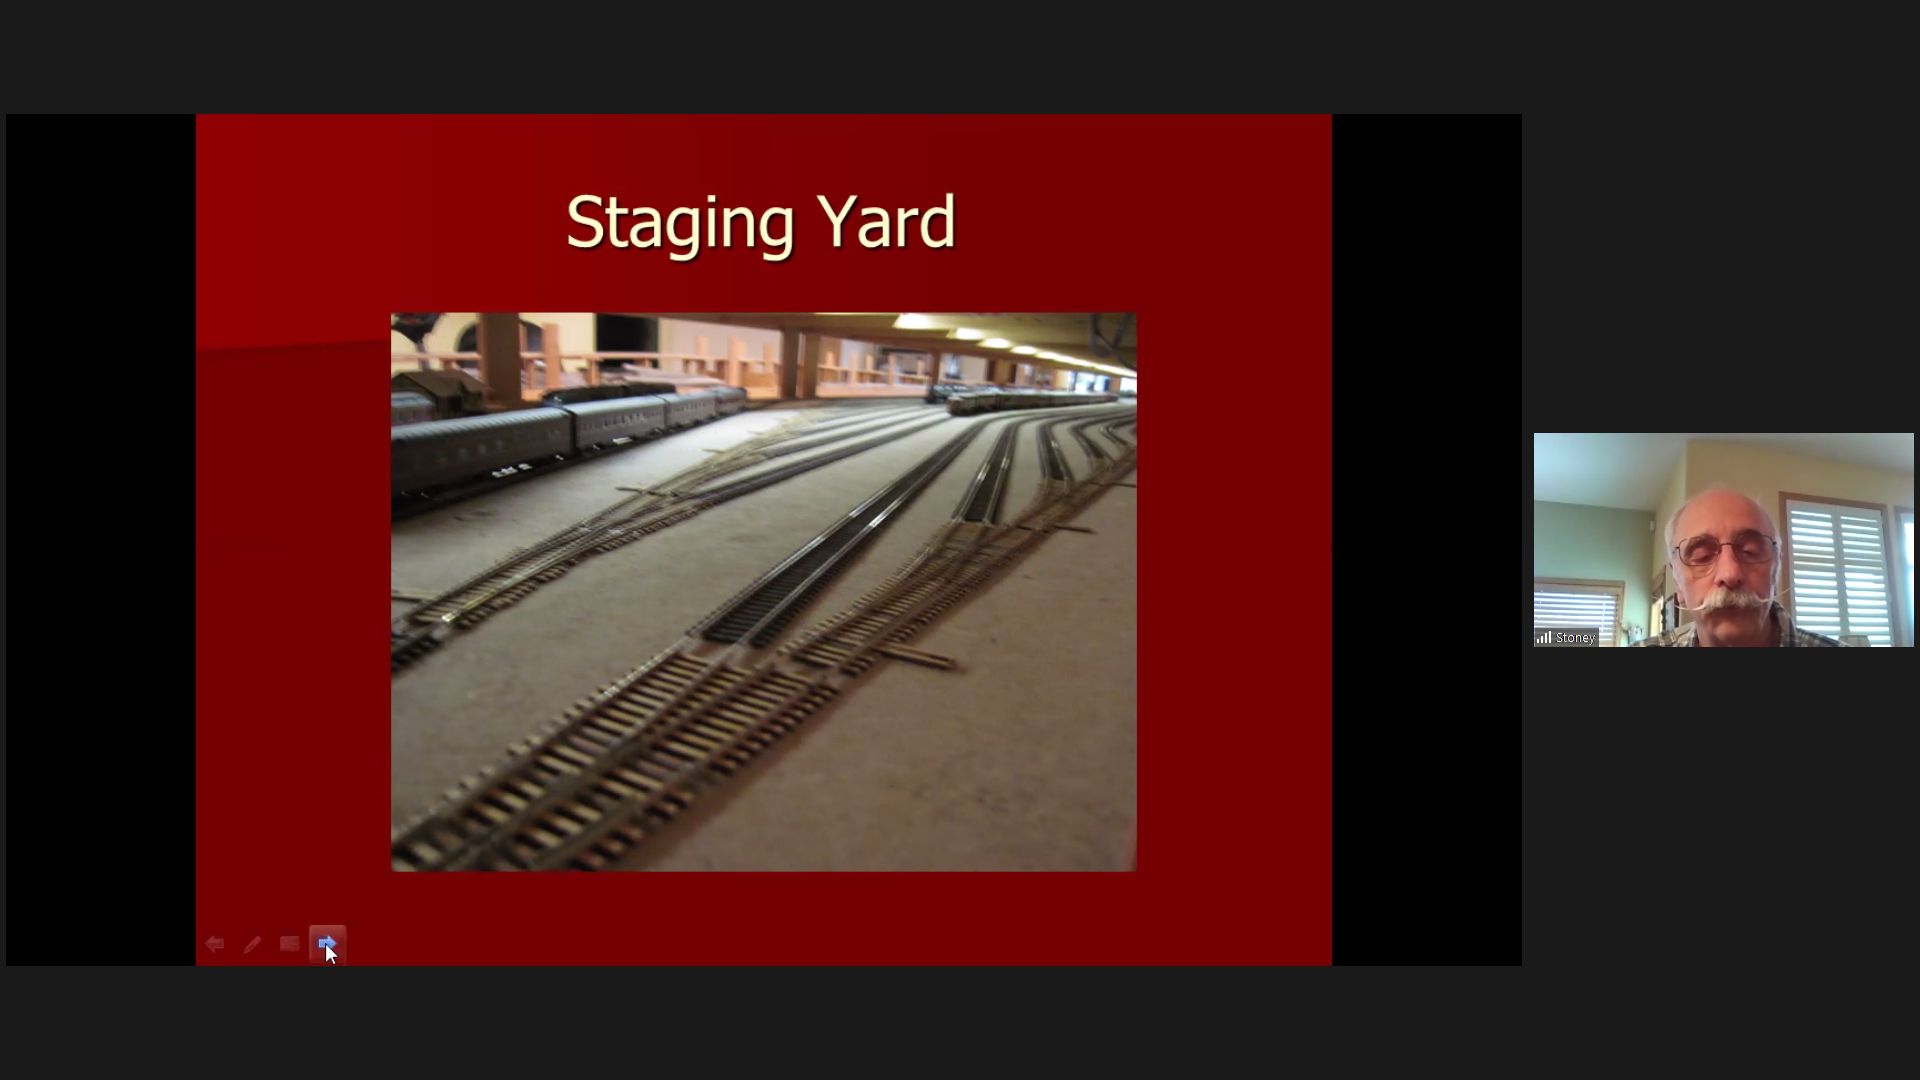 Staging Yard